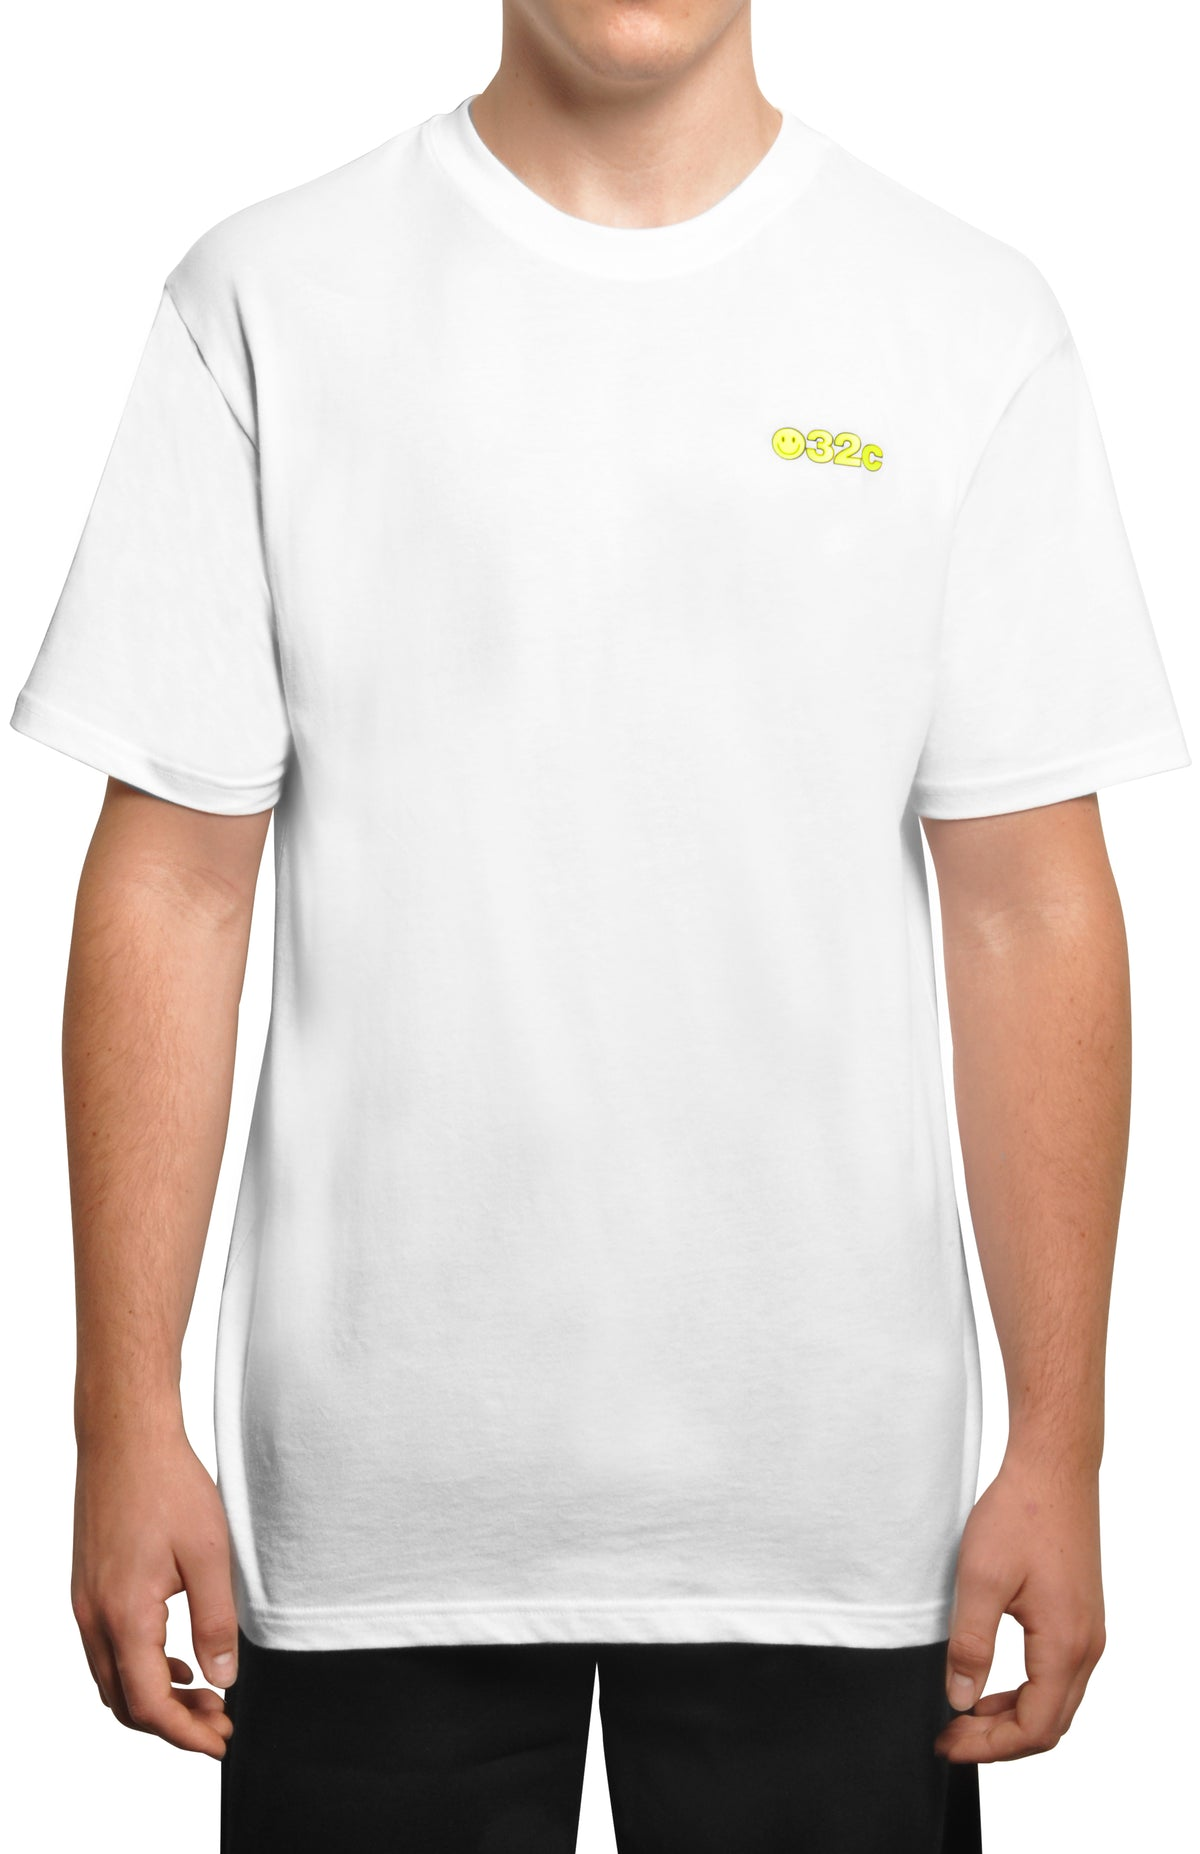 032c SMILEY T-Shirt White - 032c